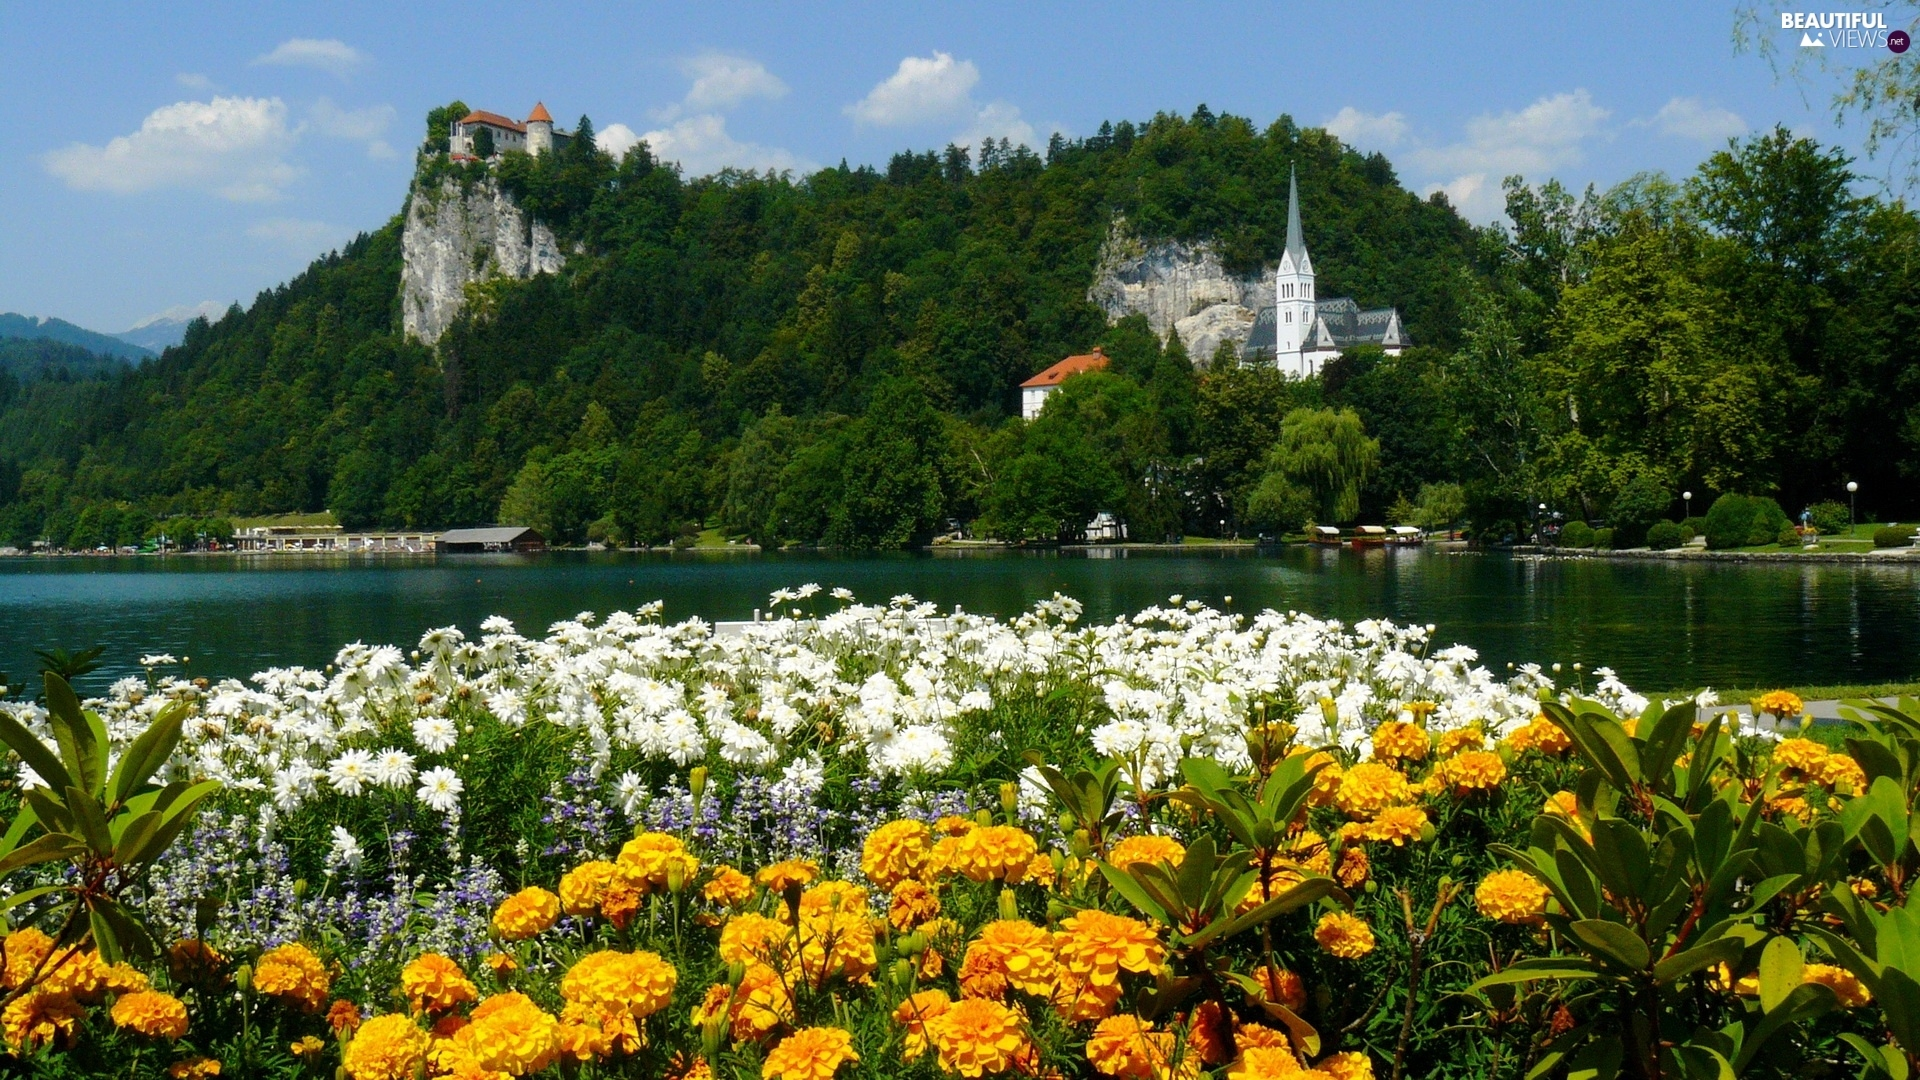 trees, viewes, Castles, Flowers, River